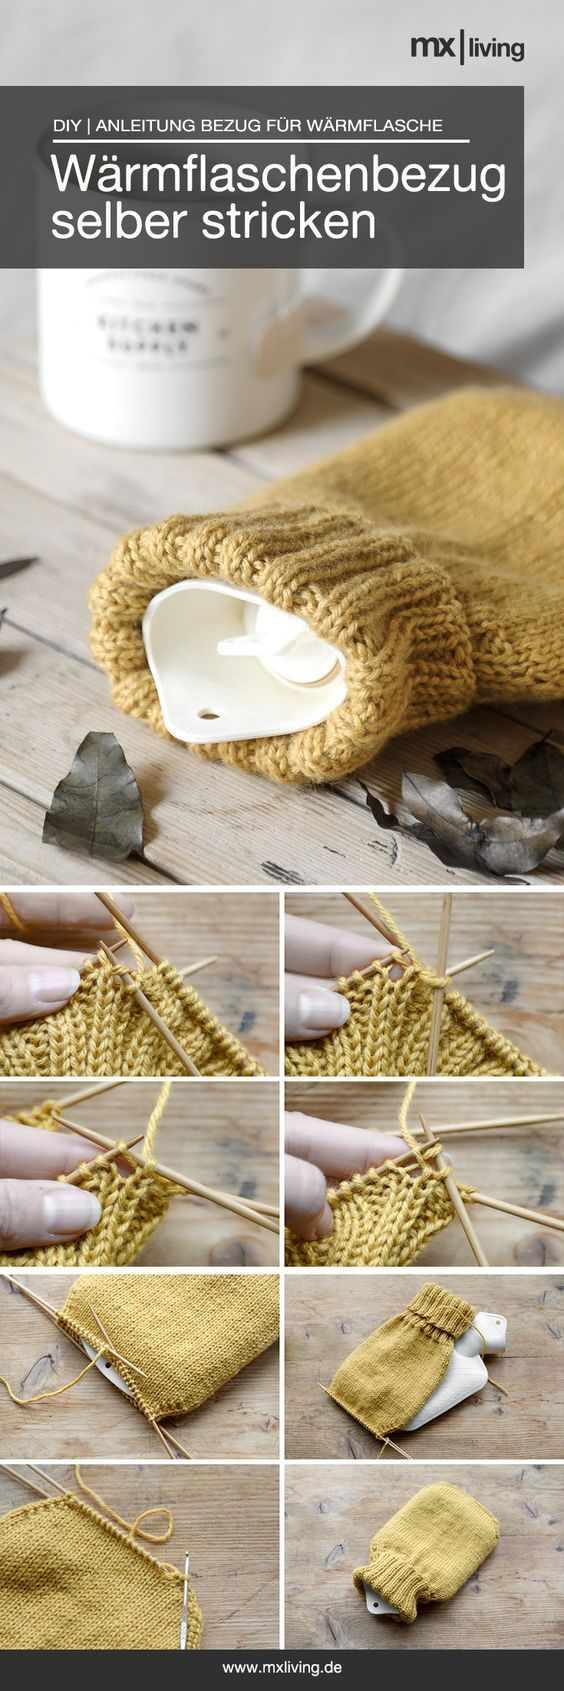 Photo of DIY | Wärmflaschenbezug stricken – mxliving